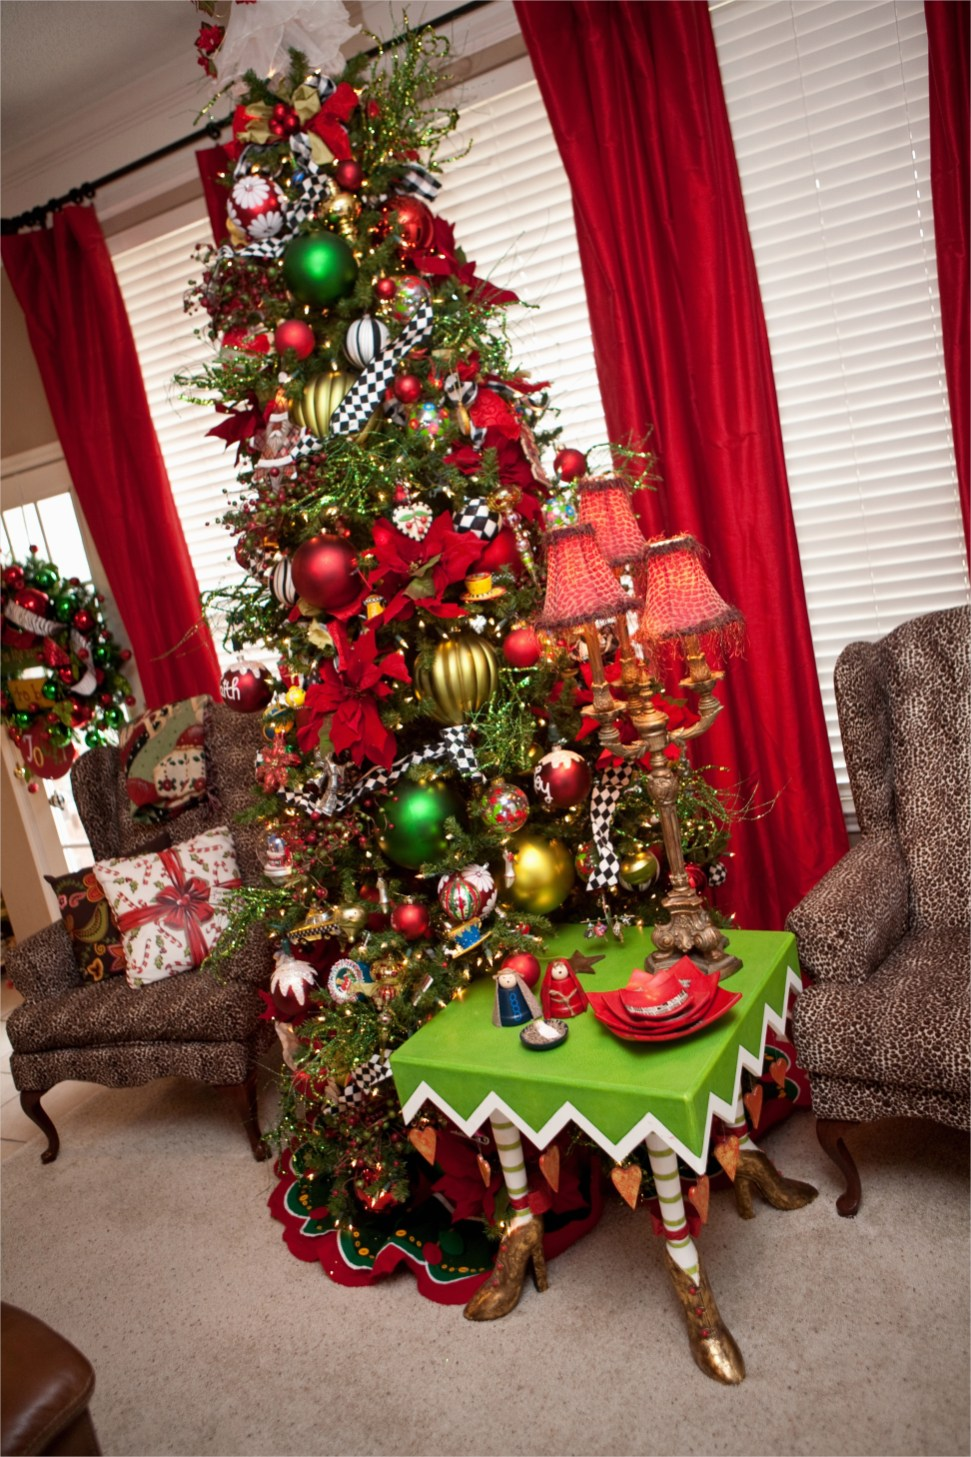 41 Awesome Whimsical Christmas Tree Decorating Ideas 31 25 Awesome Whimsical Christmas Decorations Ideas Decoration Love 8